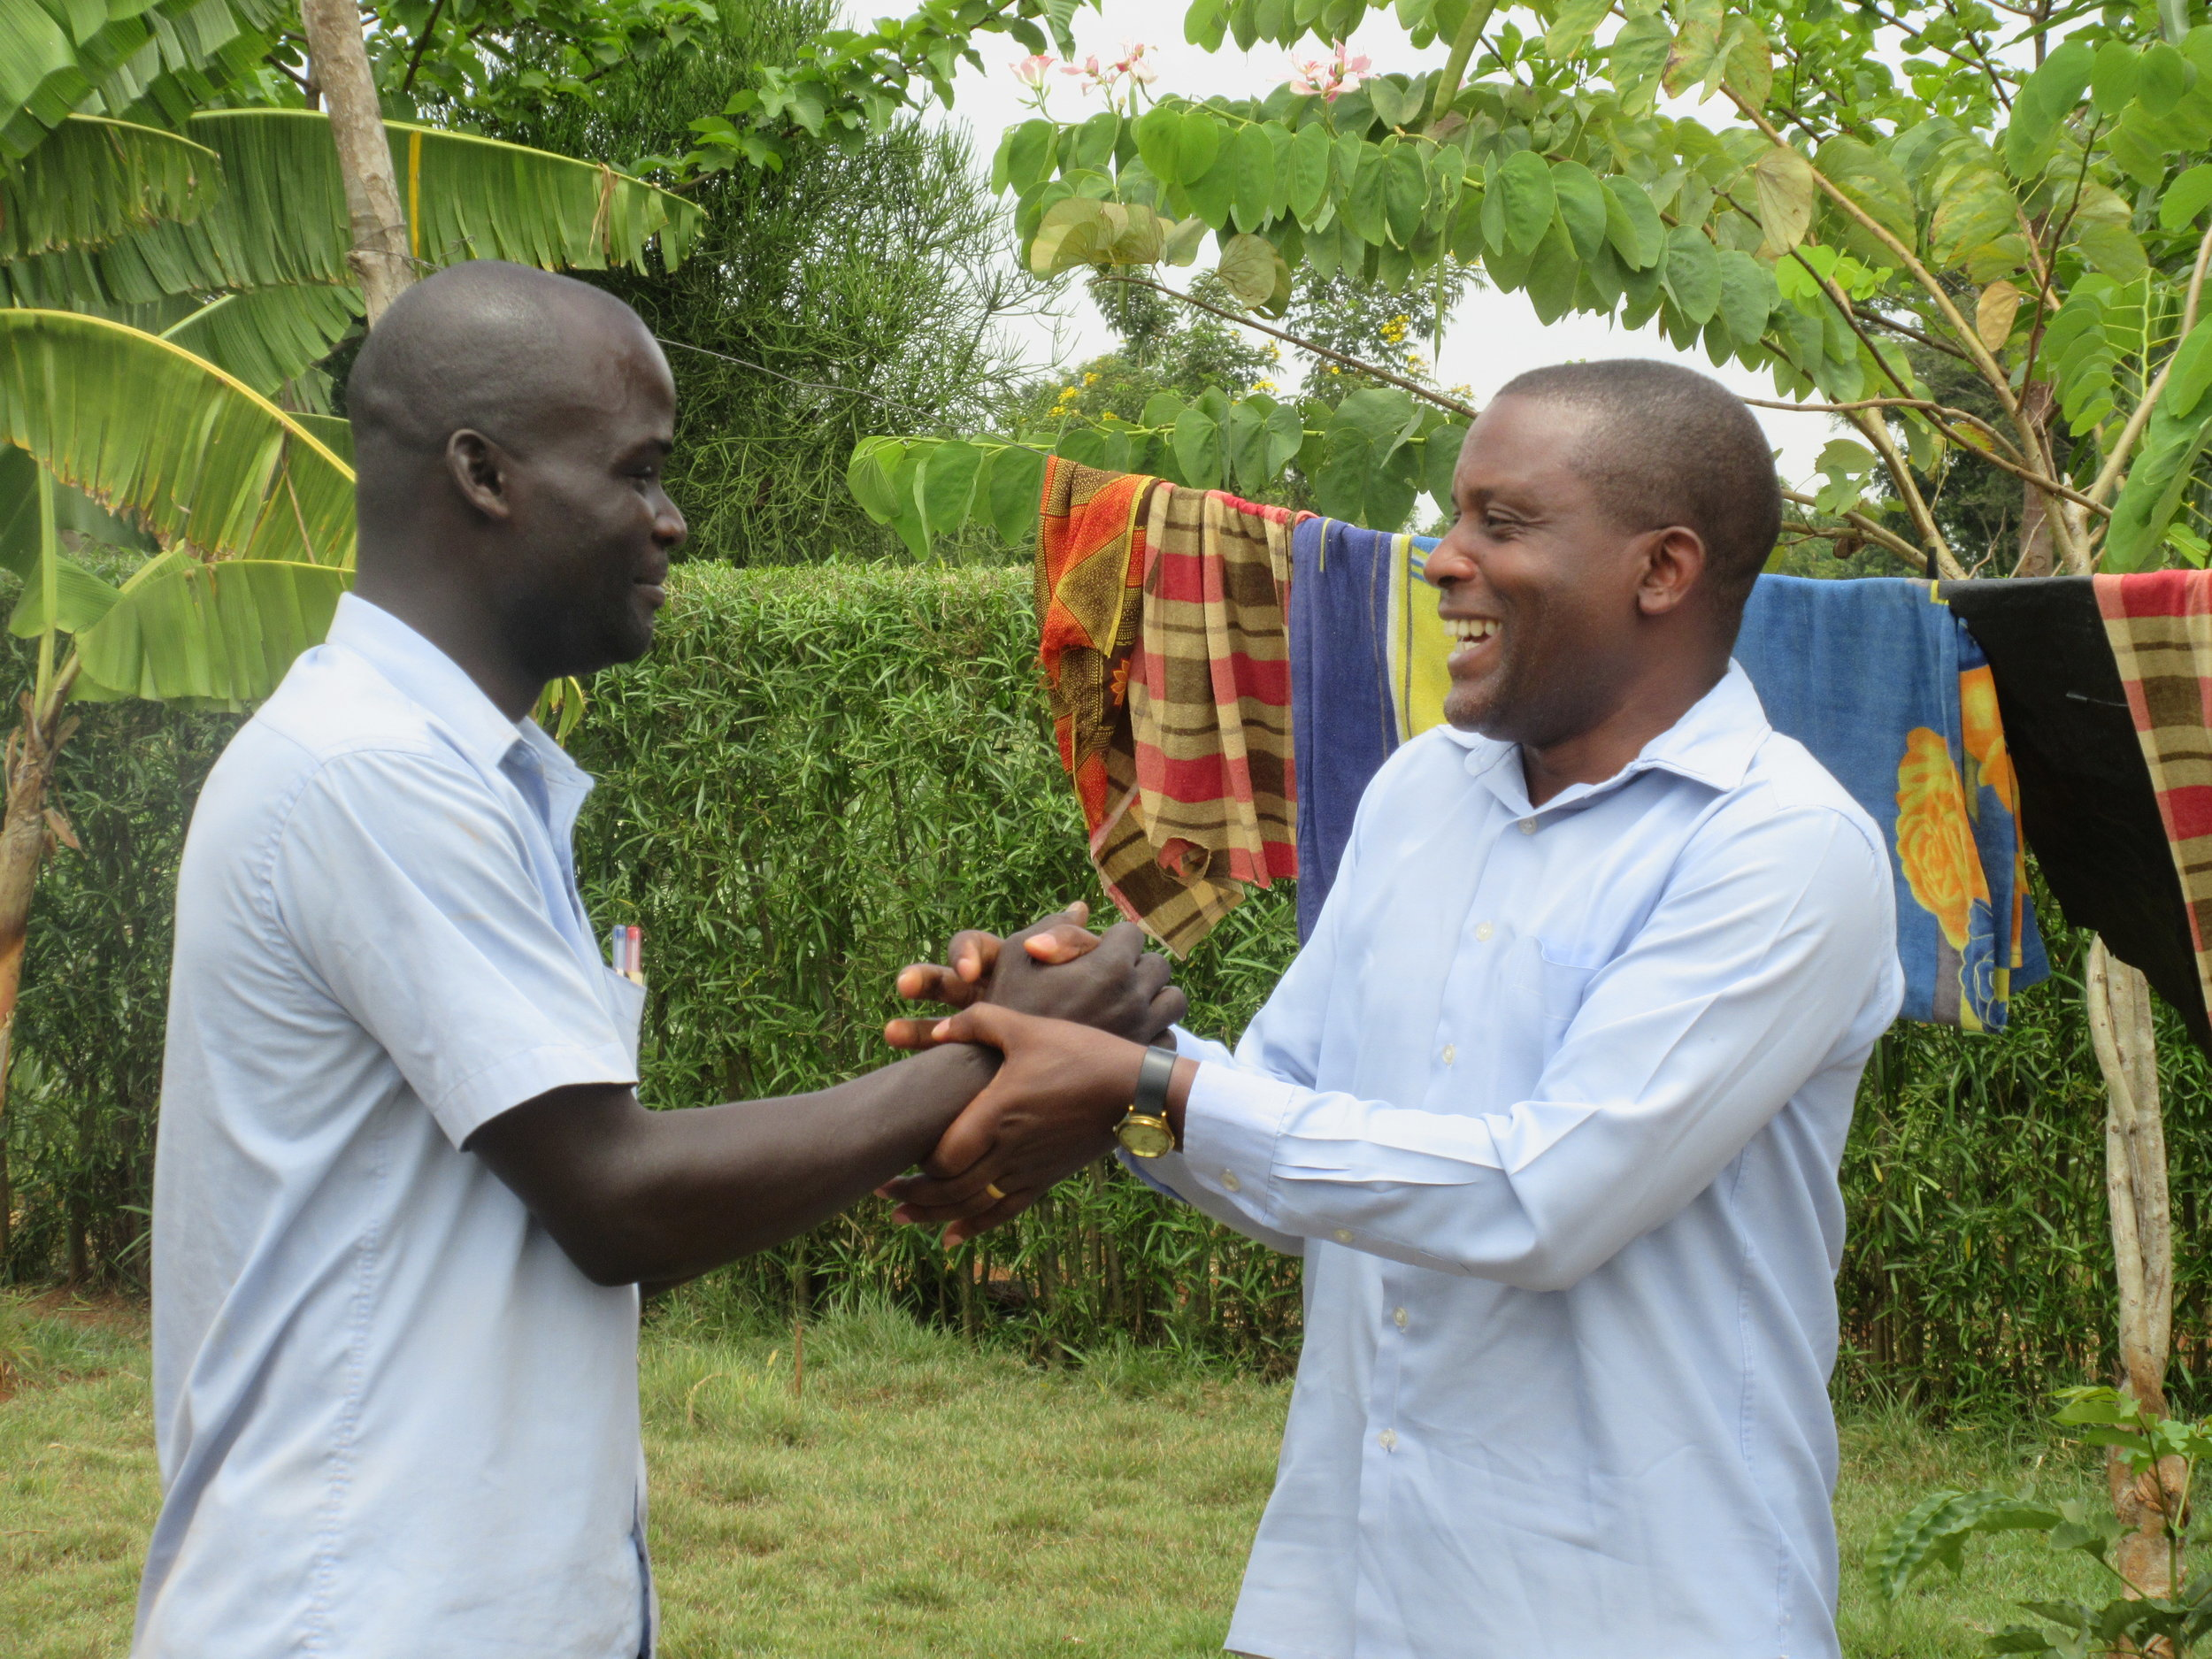 Shaking hands with Joseph Tumushime